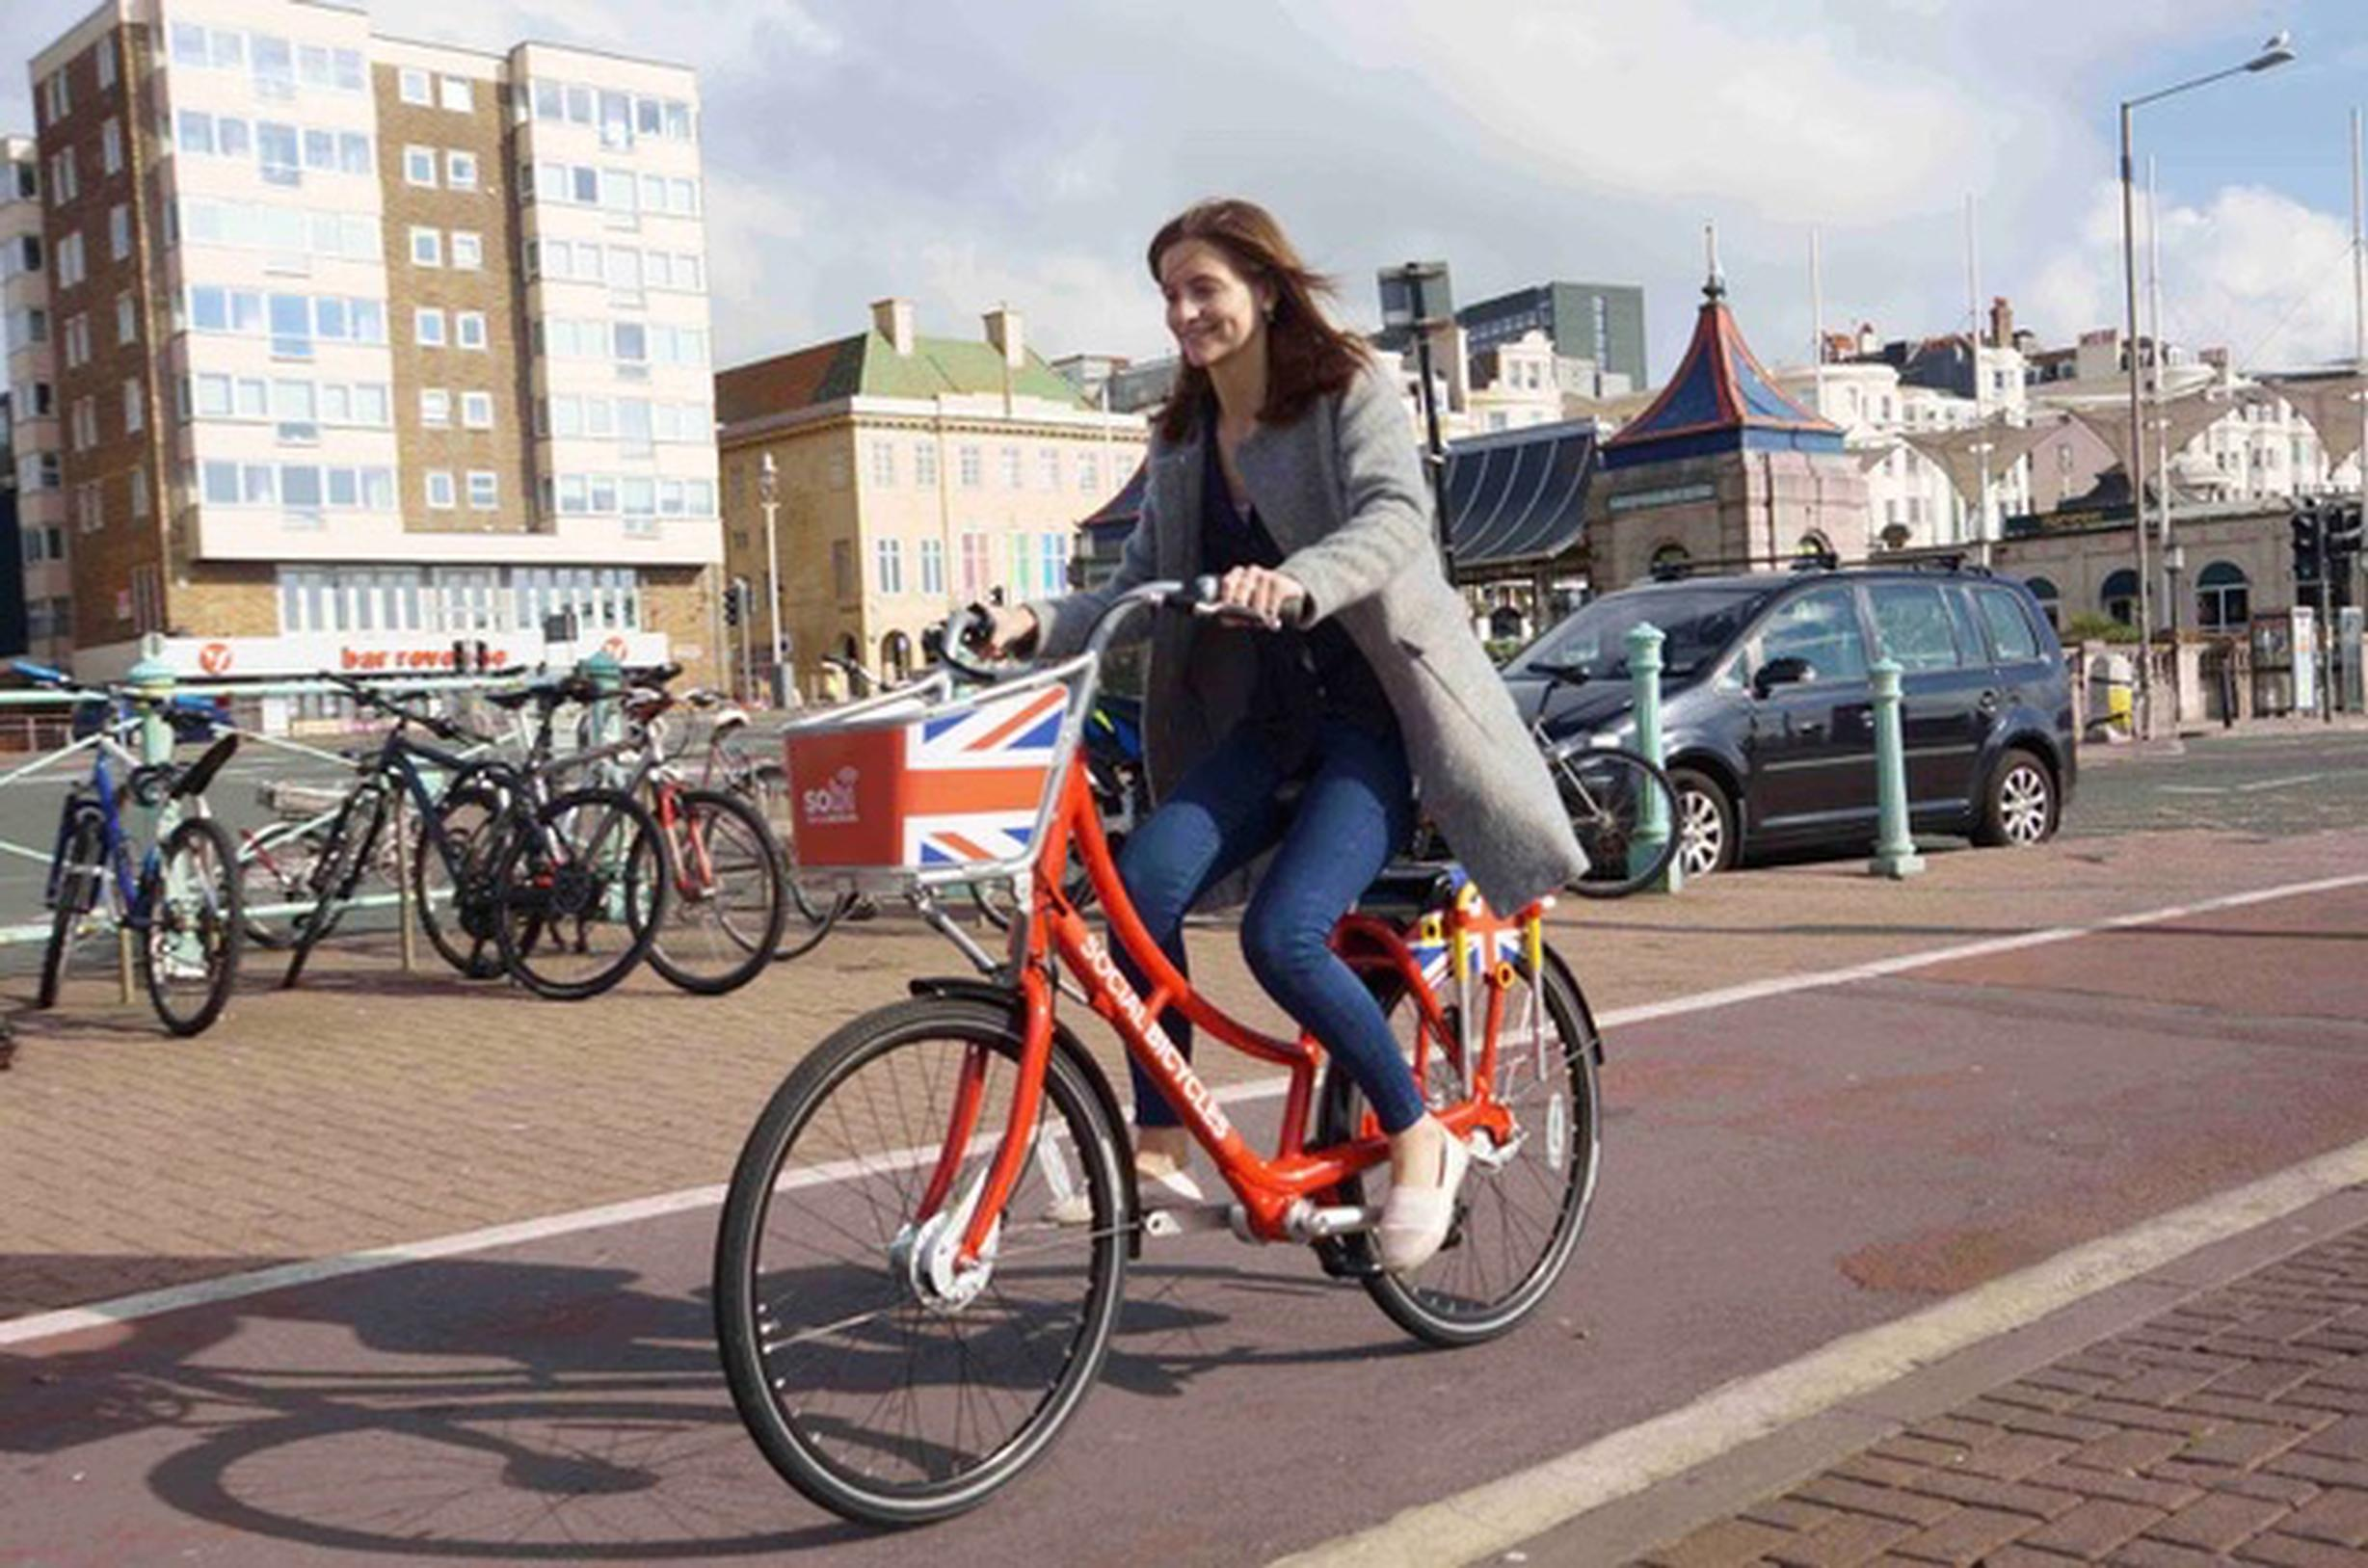 The'social bicycle' (SOBI) smartbikes wlll be available from 50 docking stations in Brighton and Hove including along the seafront